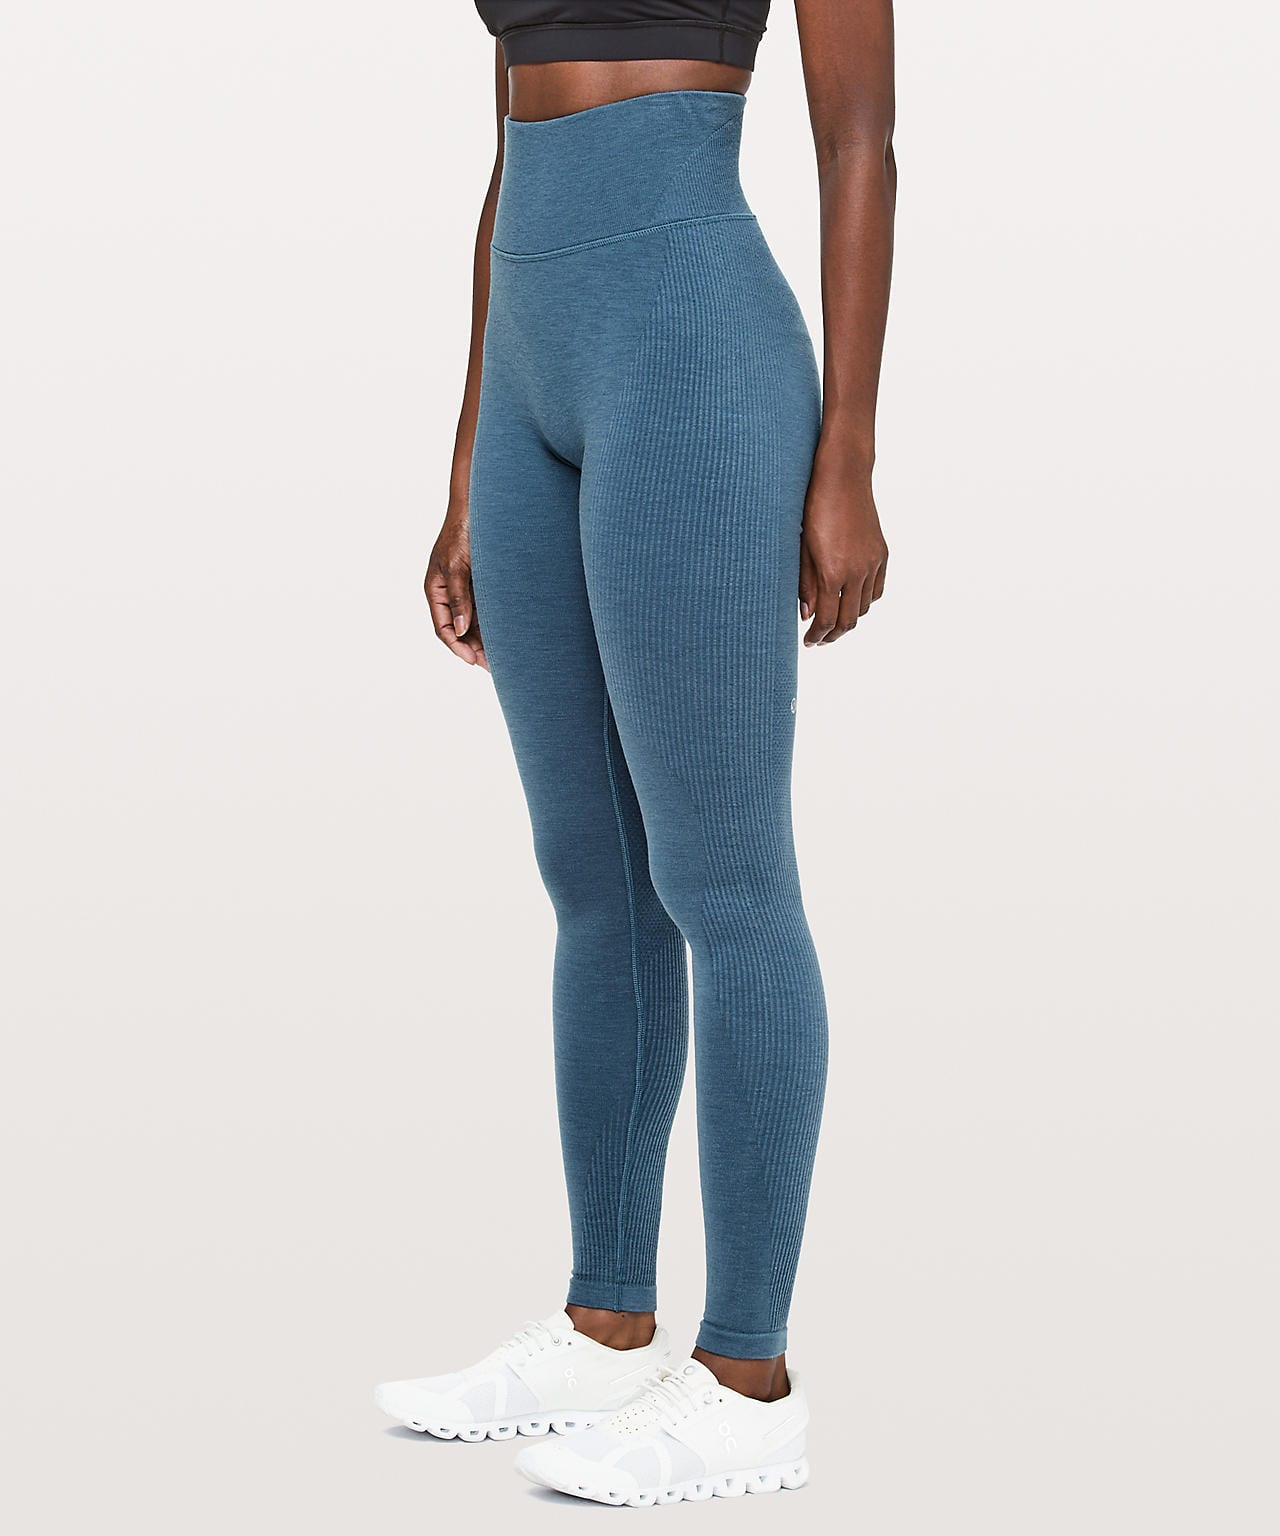 Keep The Heat, Lululemon, Thermal Wool Blend Tight